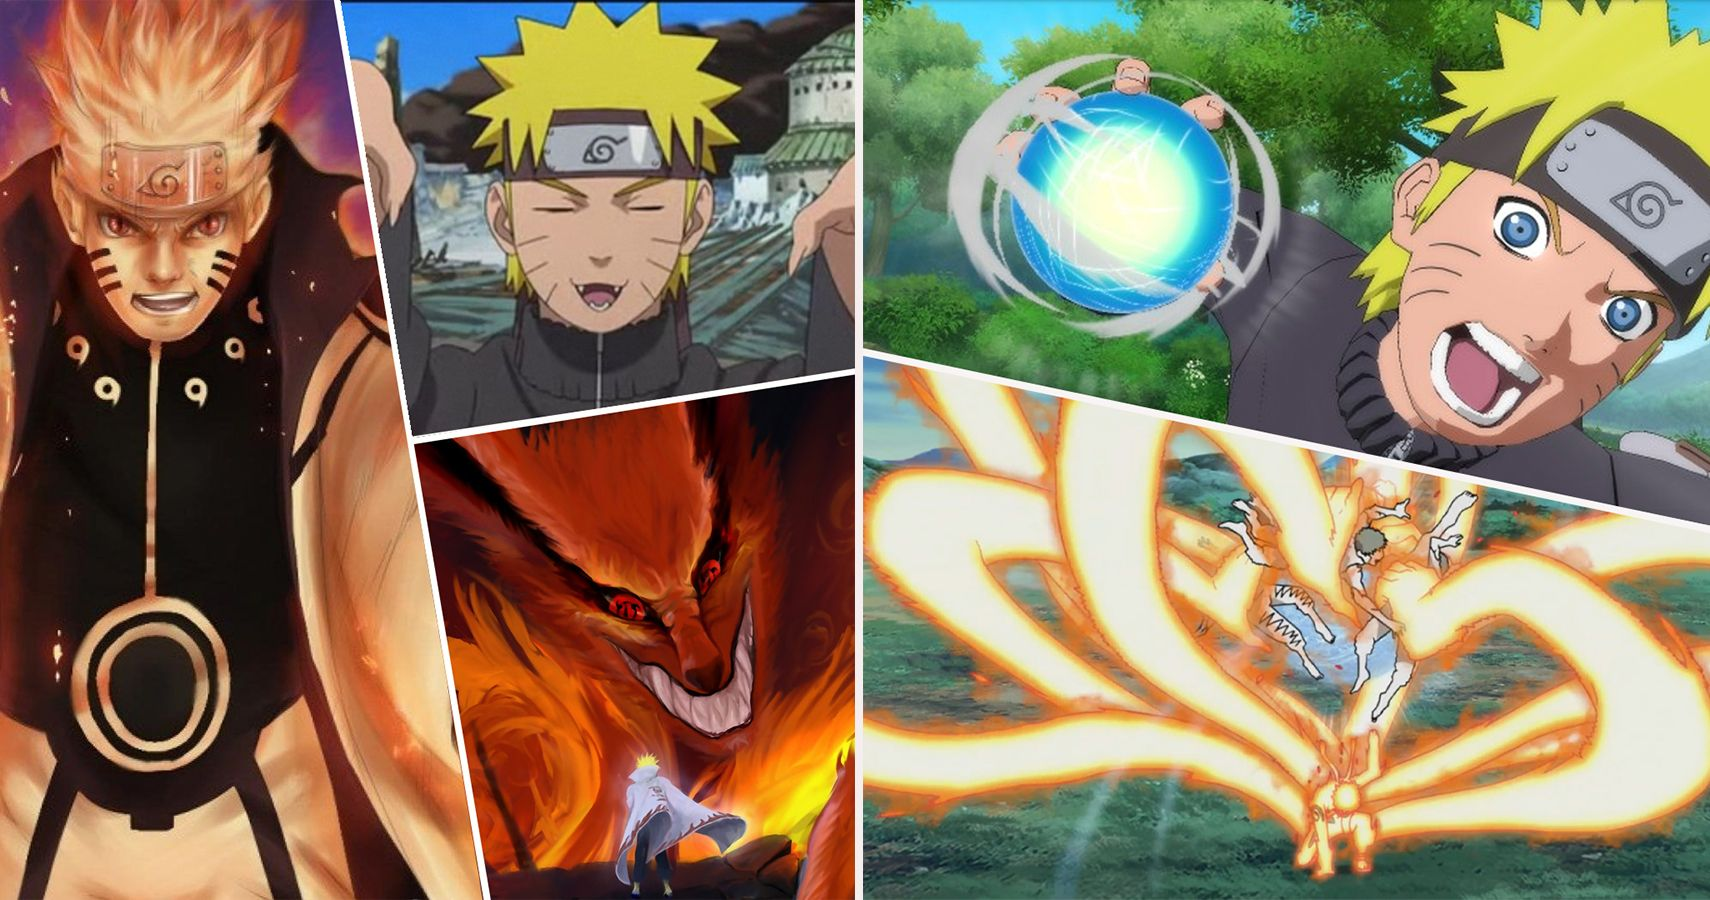 0 Tails Naruto 25 ways naruto is too overpowered | thegamer